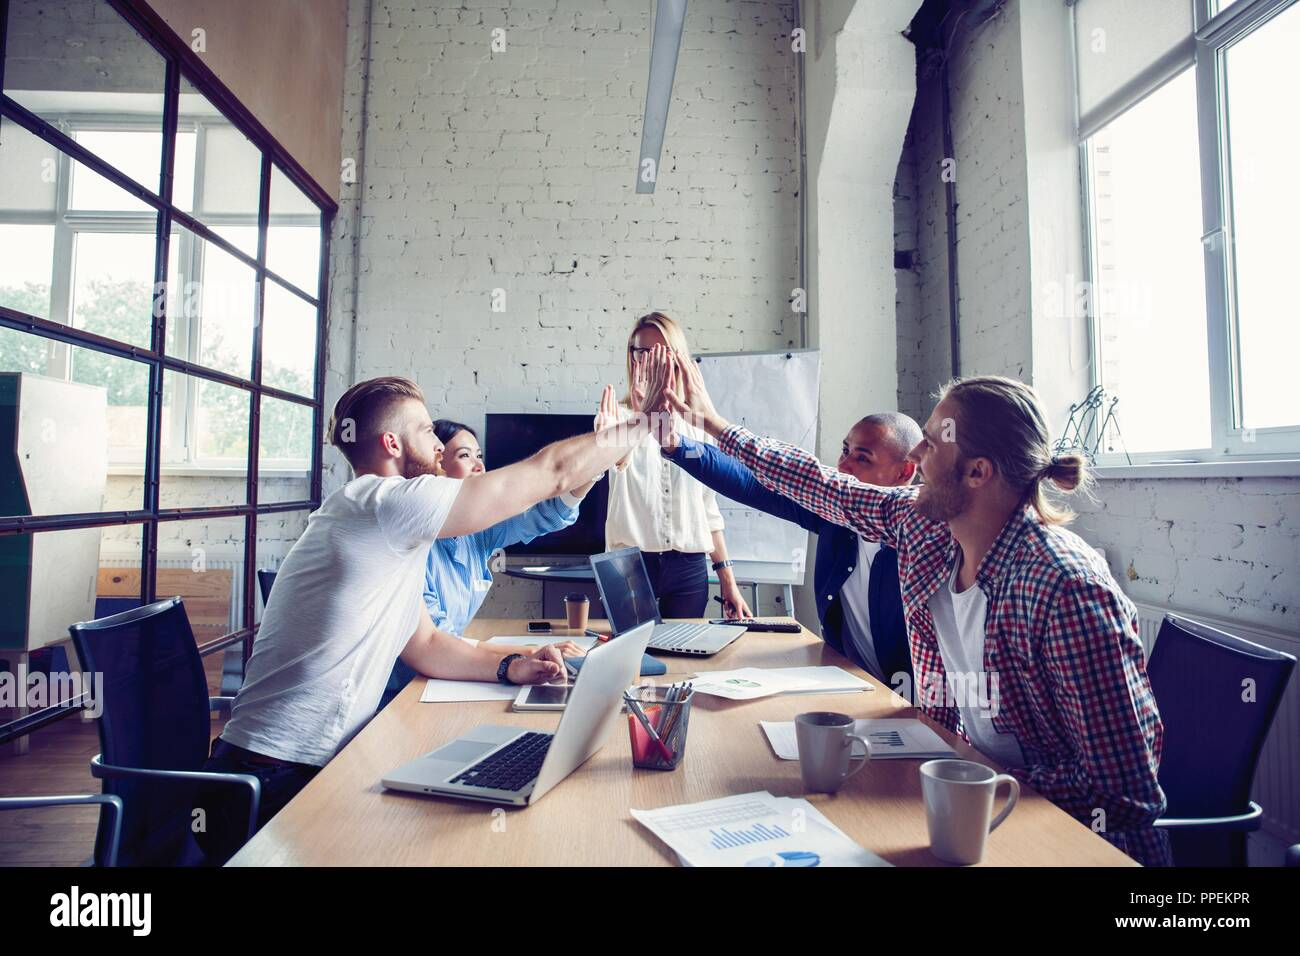 Happy successful multiracial business team giving a high fives gesture as they laugh and cheer their success. - Stock Image